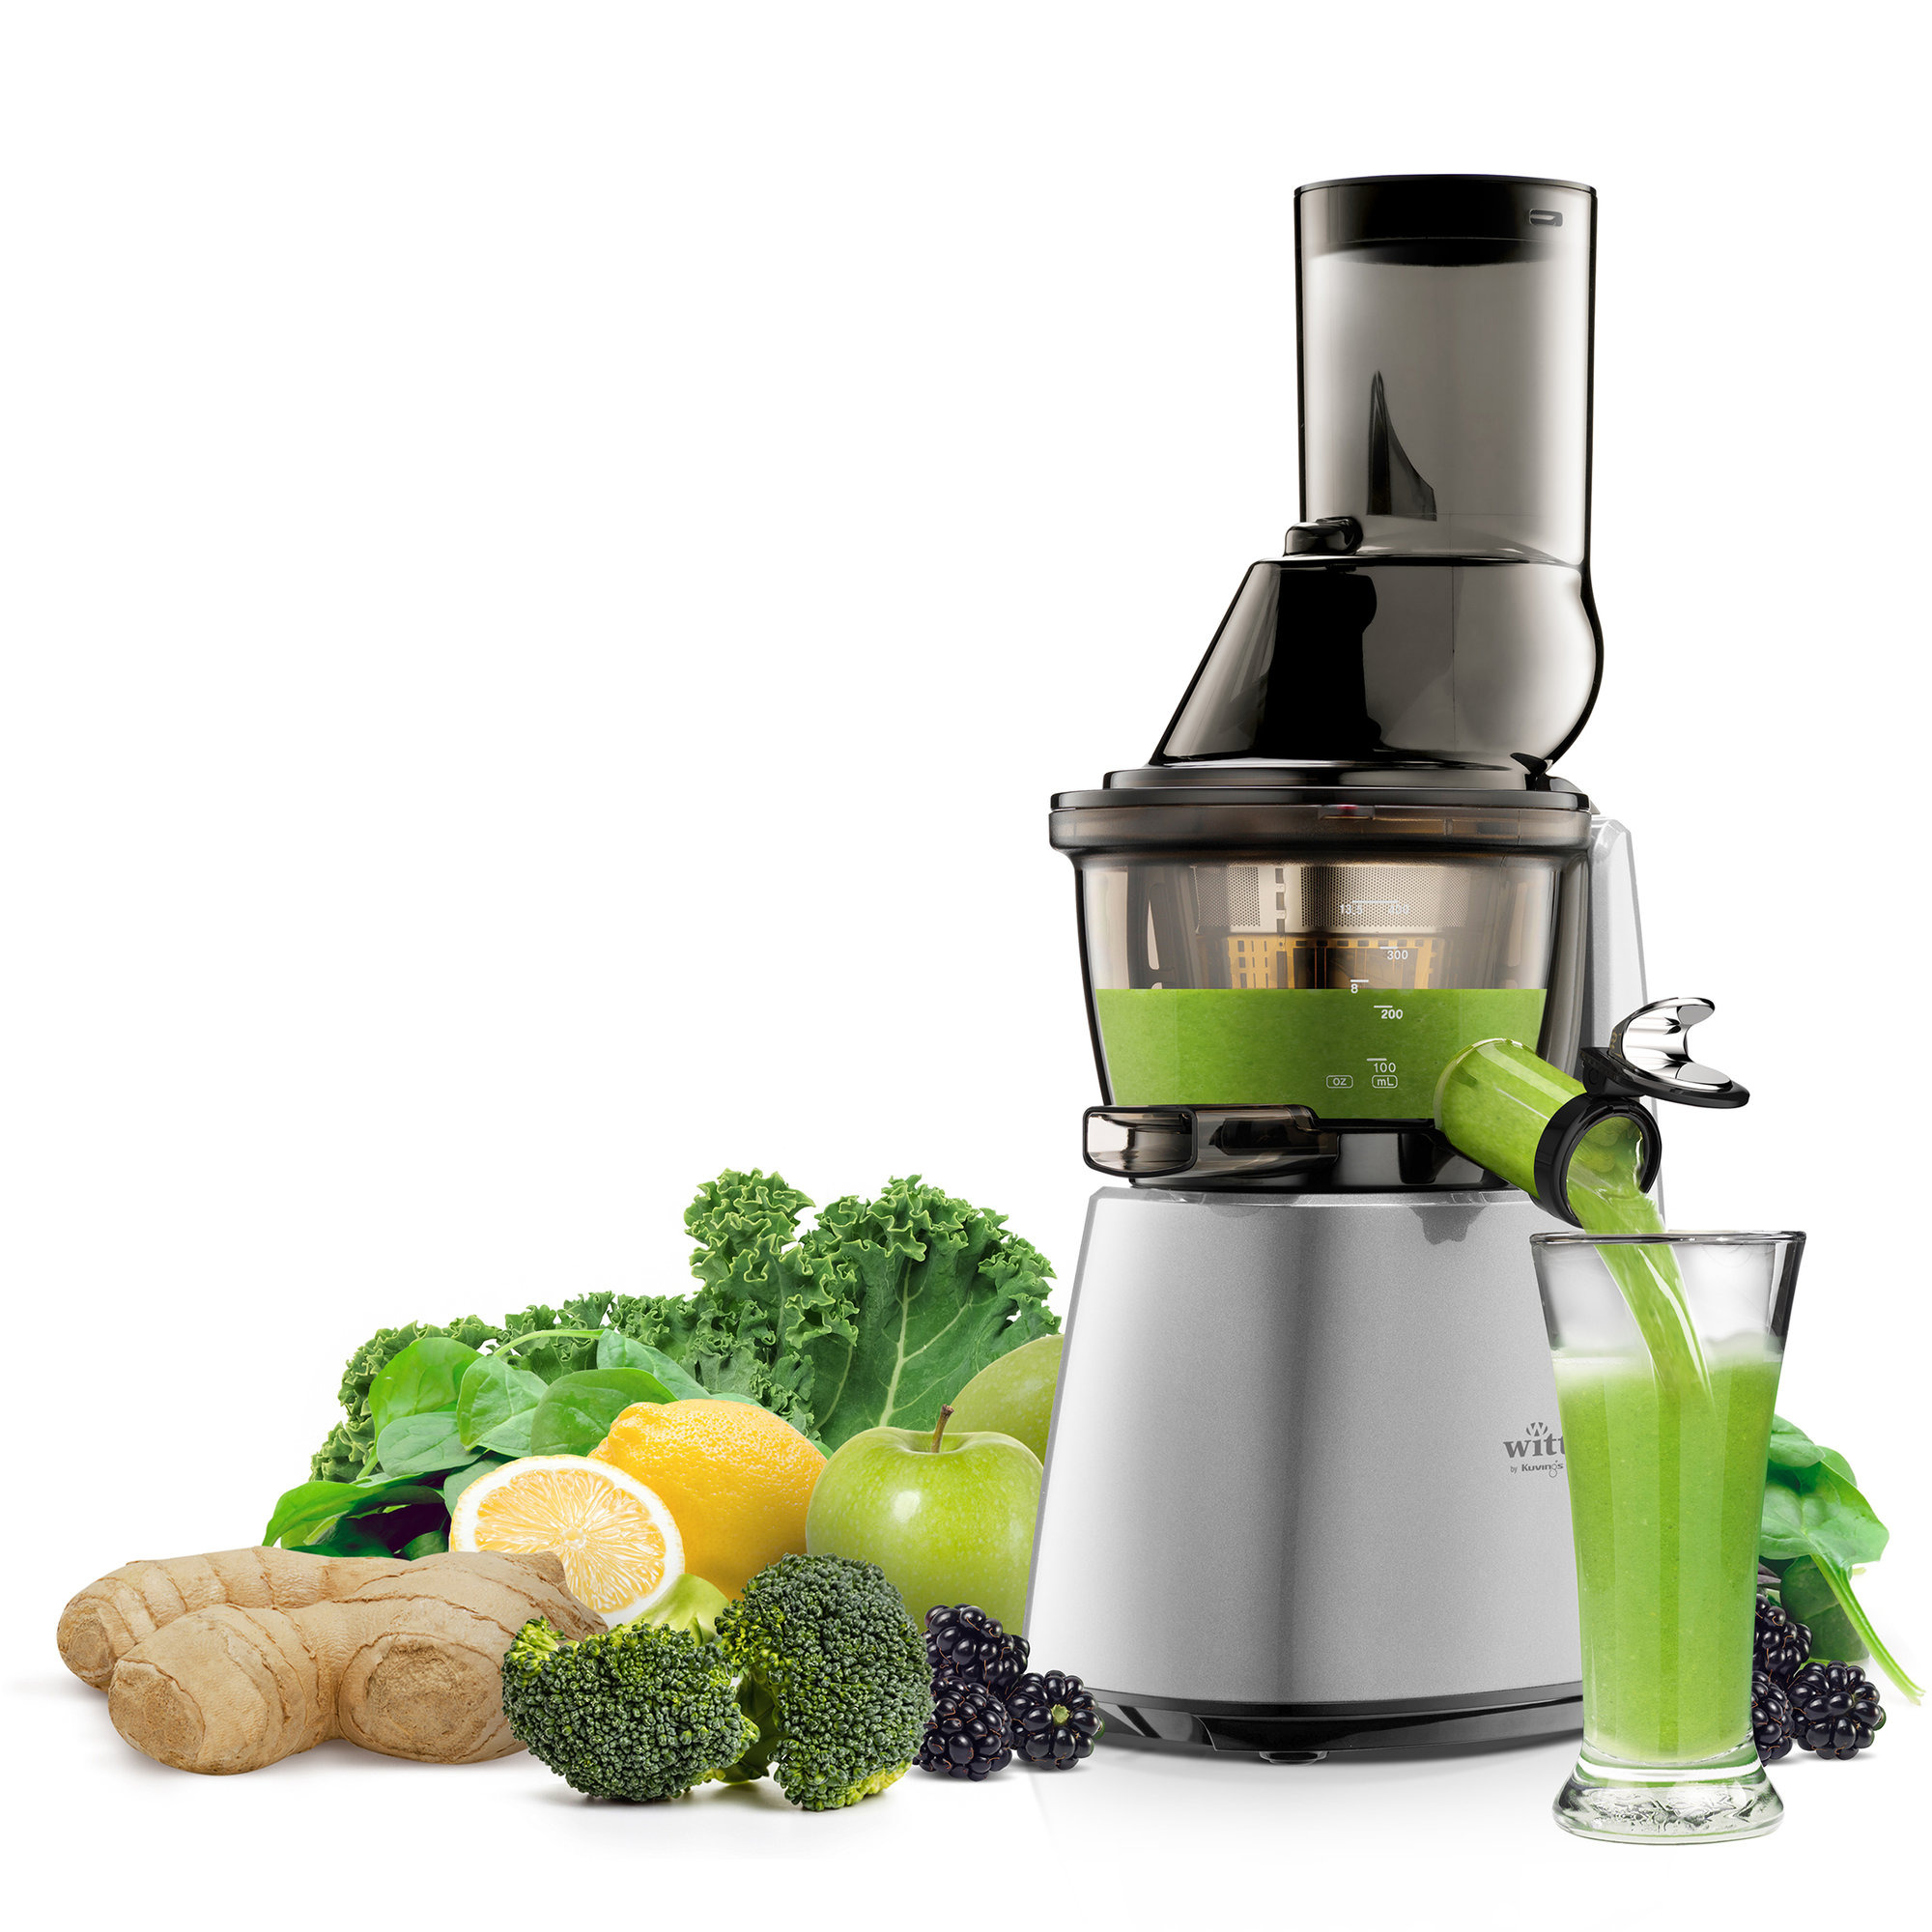 Slow Juicer Witt : Best?ll C9600 S Slow Juicer silver fran Witt by Kuvings